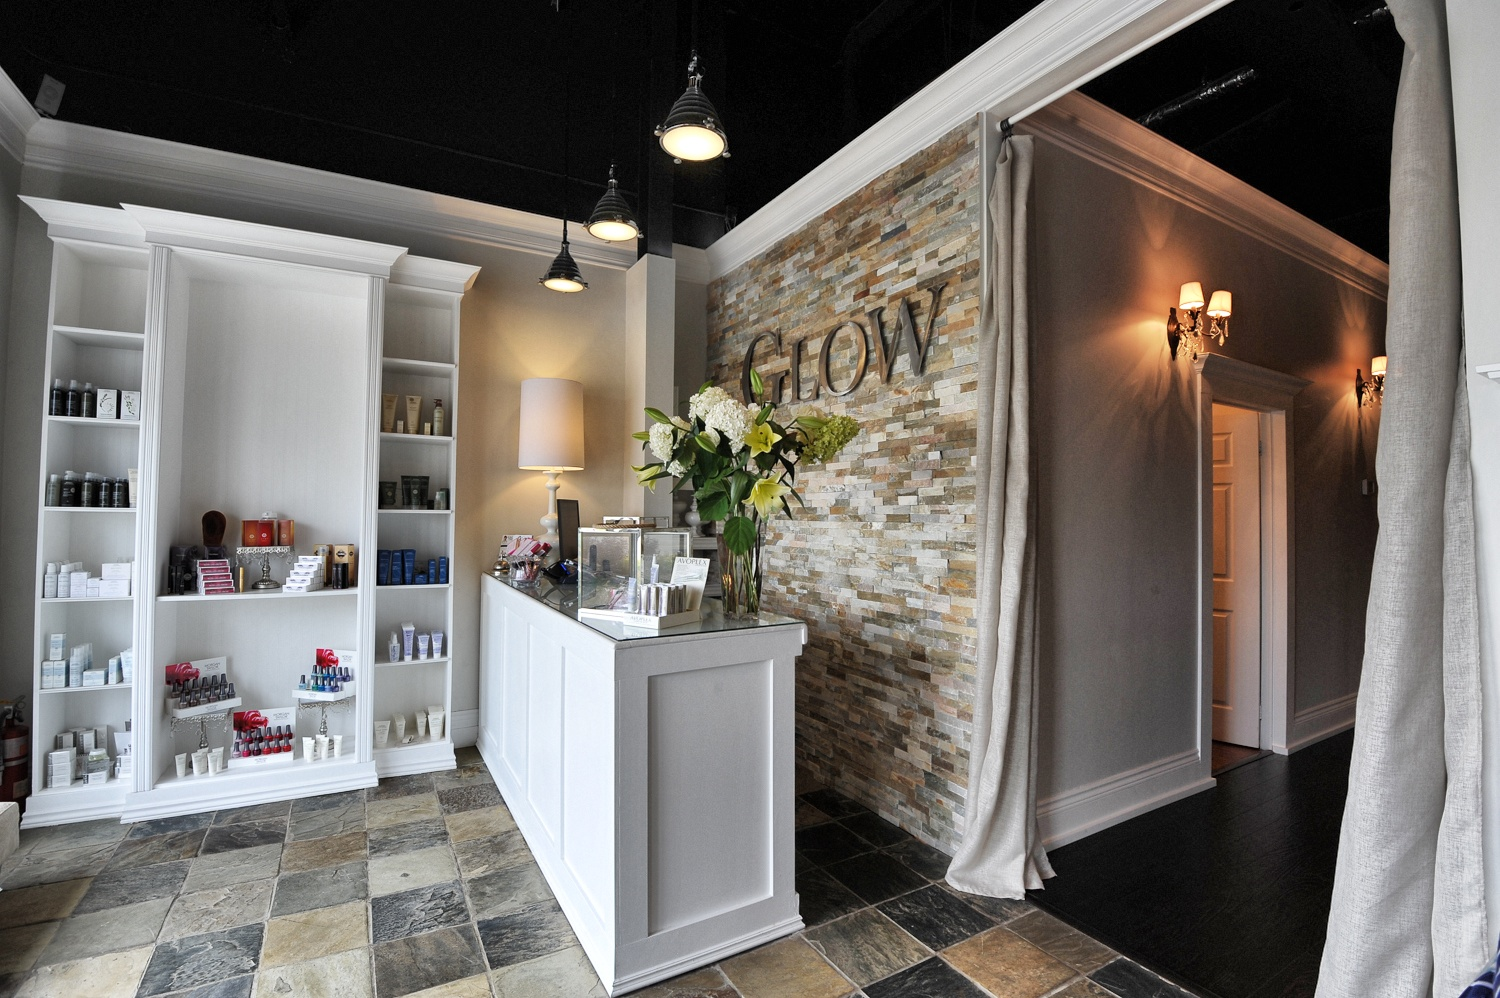 Current location Glow Day Spa Inc. Barrie, ON